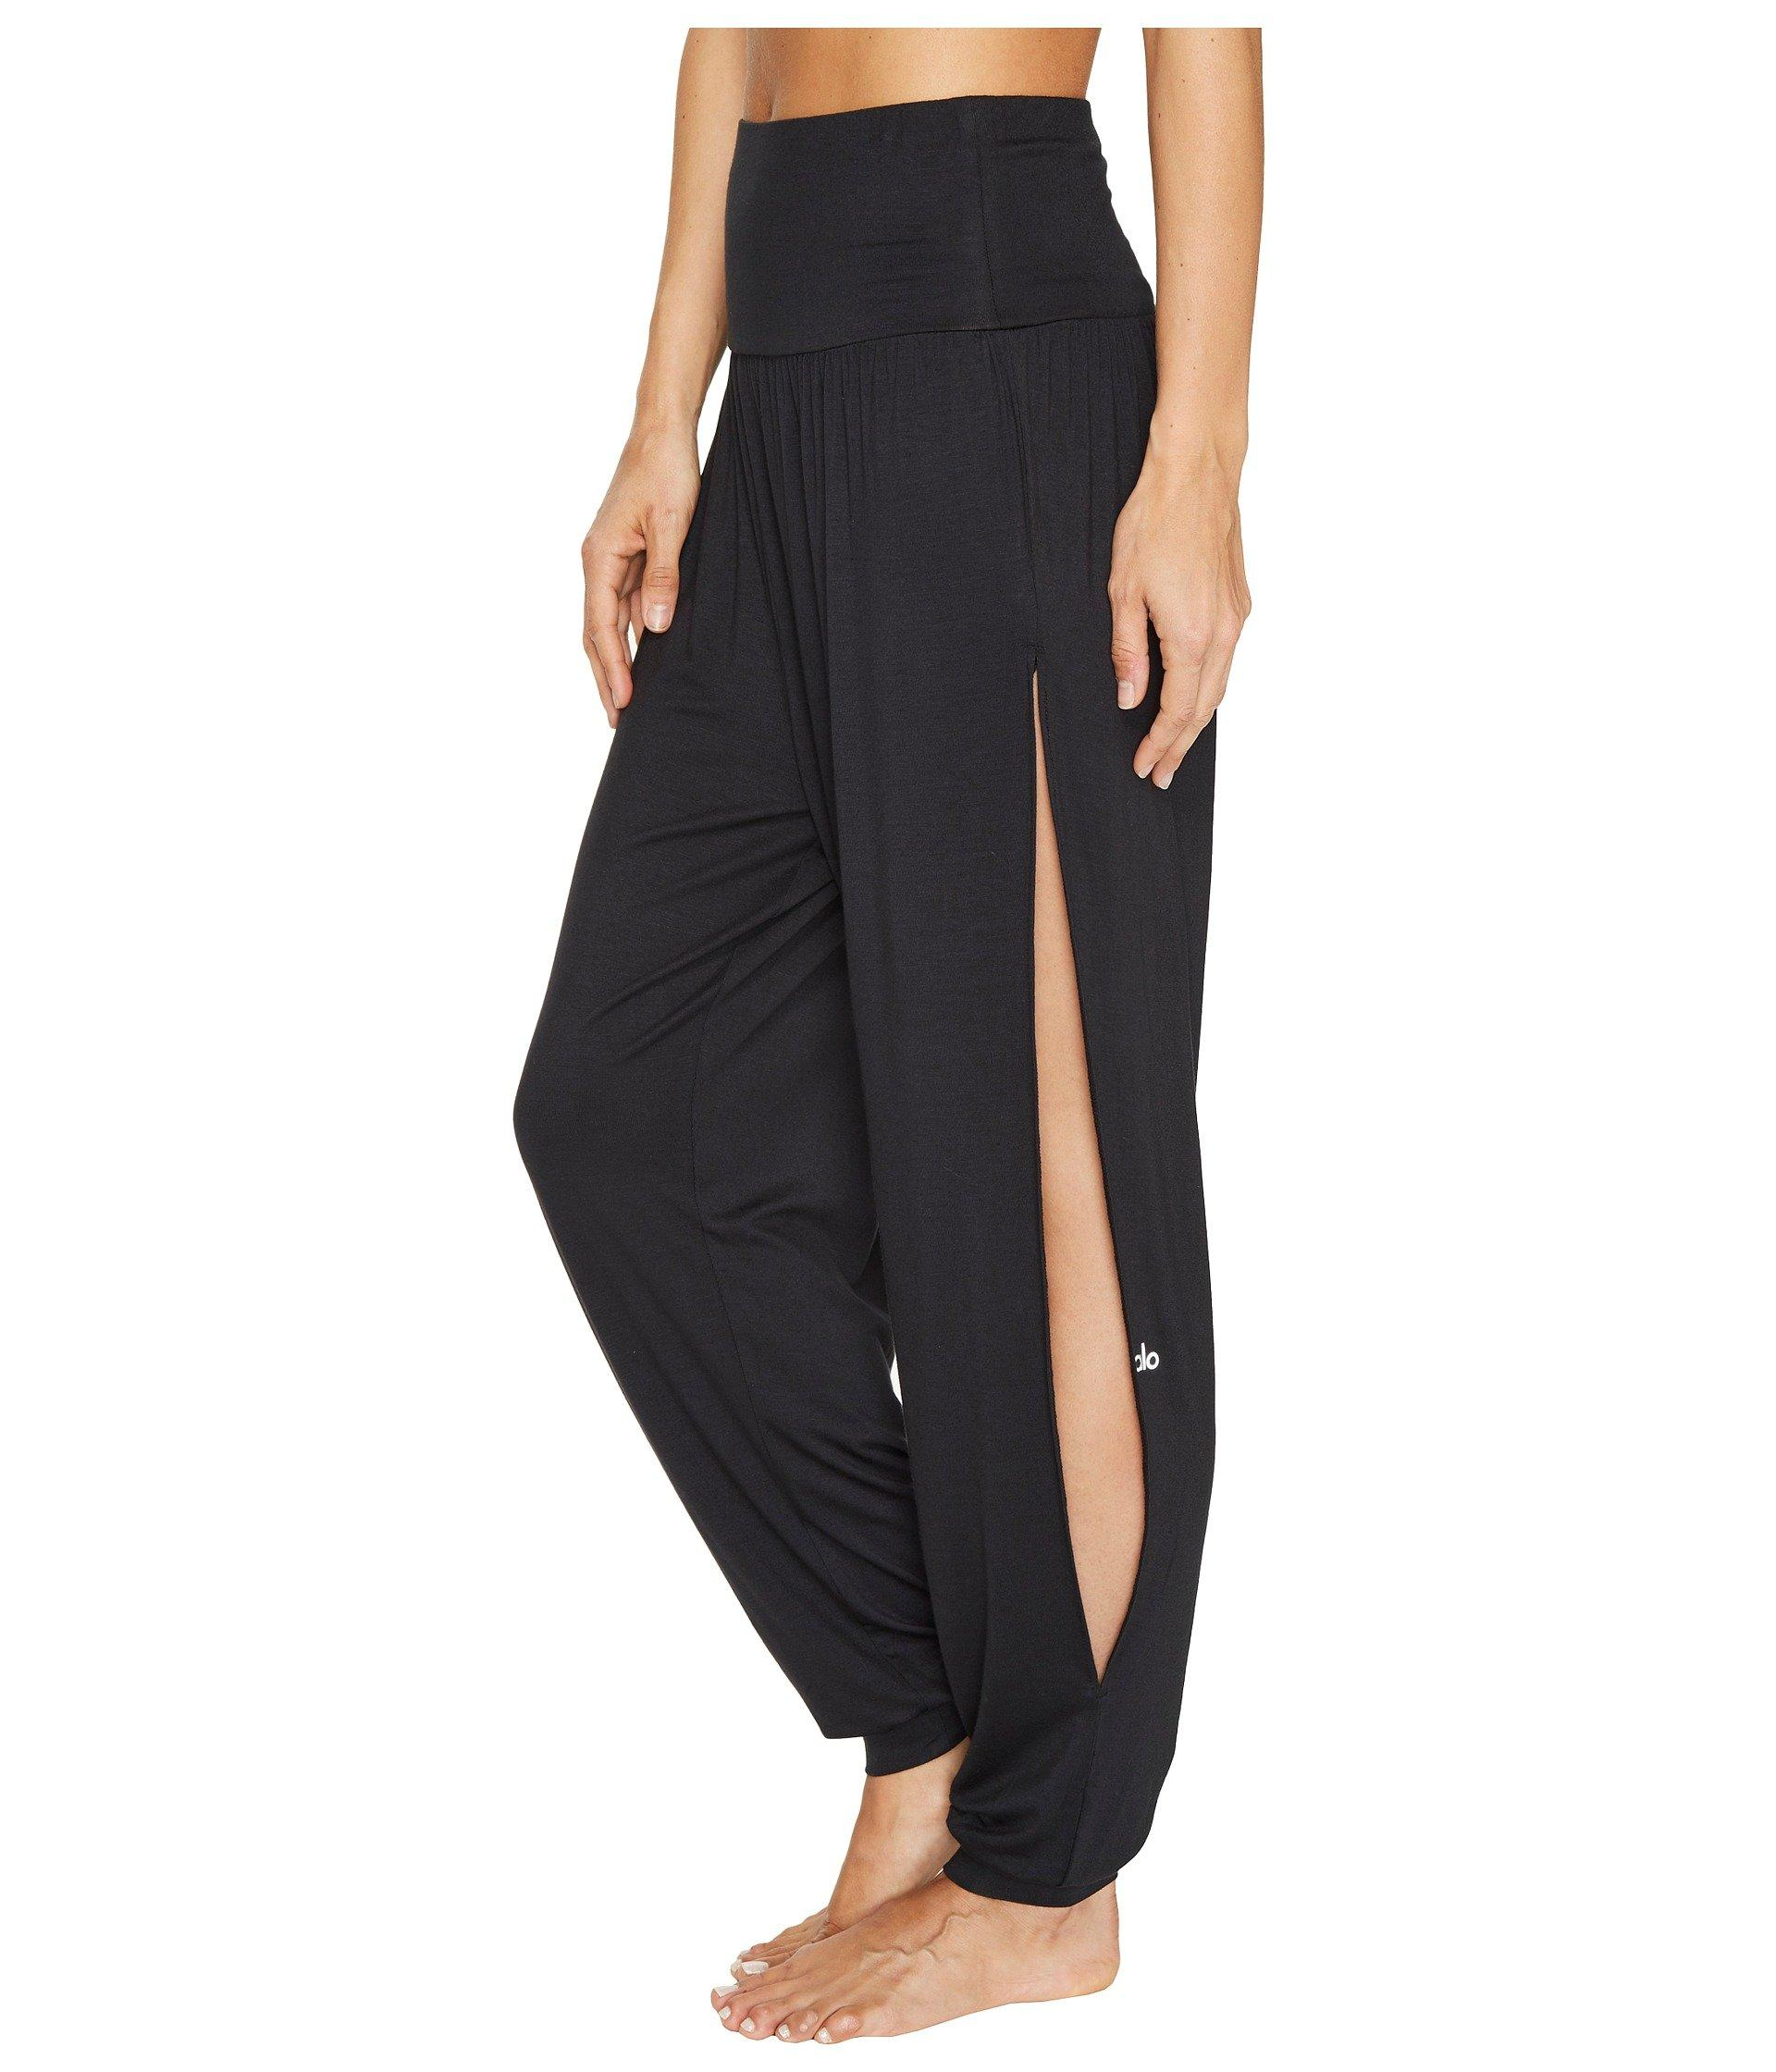 348e225472117 Alo Yoga Intention Pants in Black - Lyst